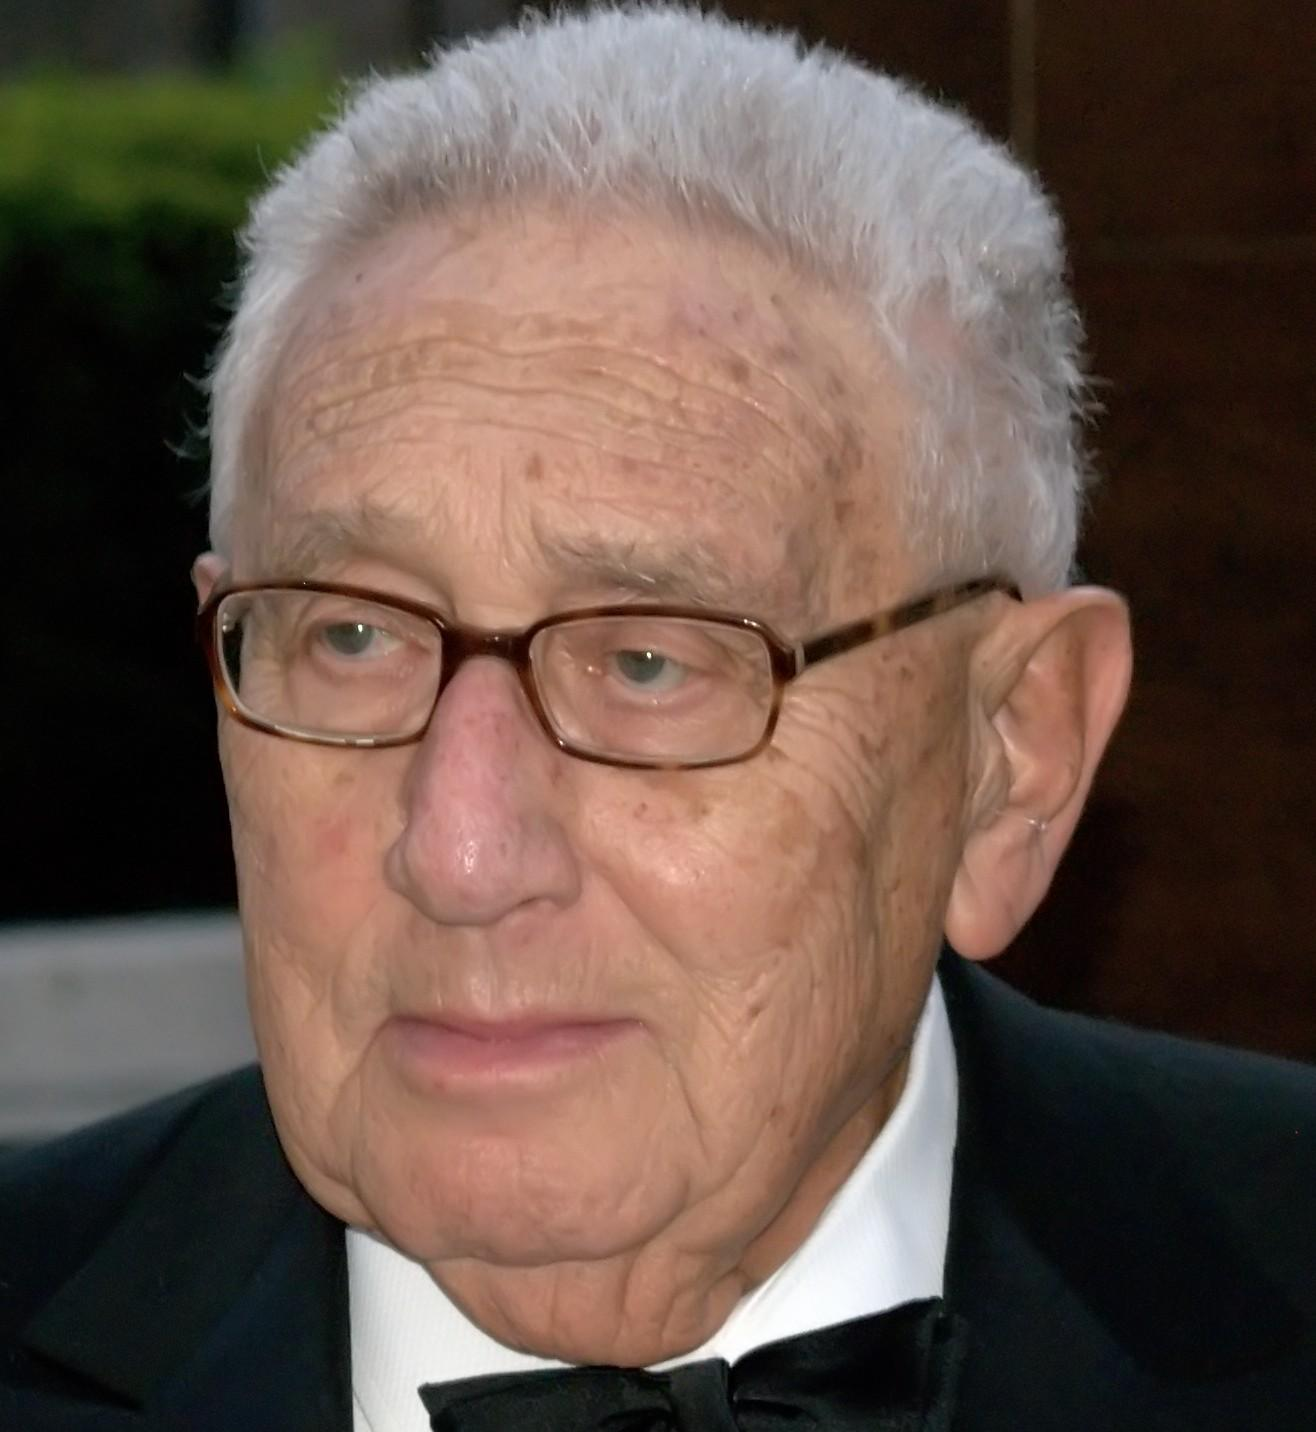 Henry Kissinger Bio, Net Worth, Facts